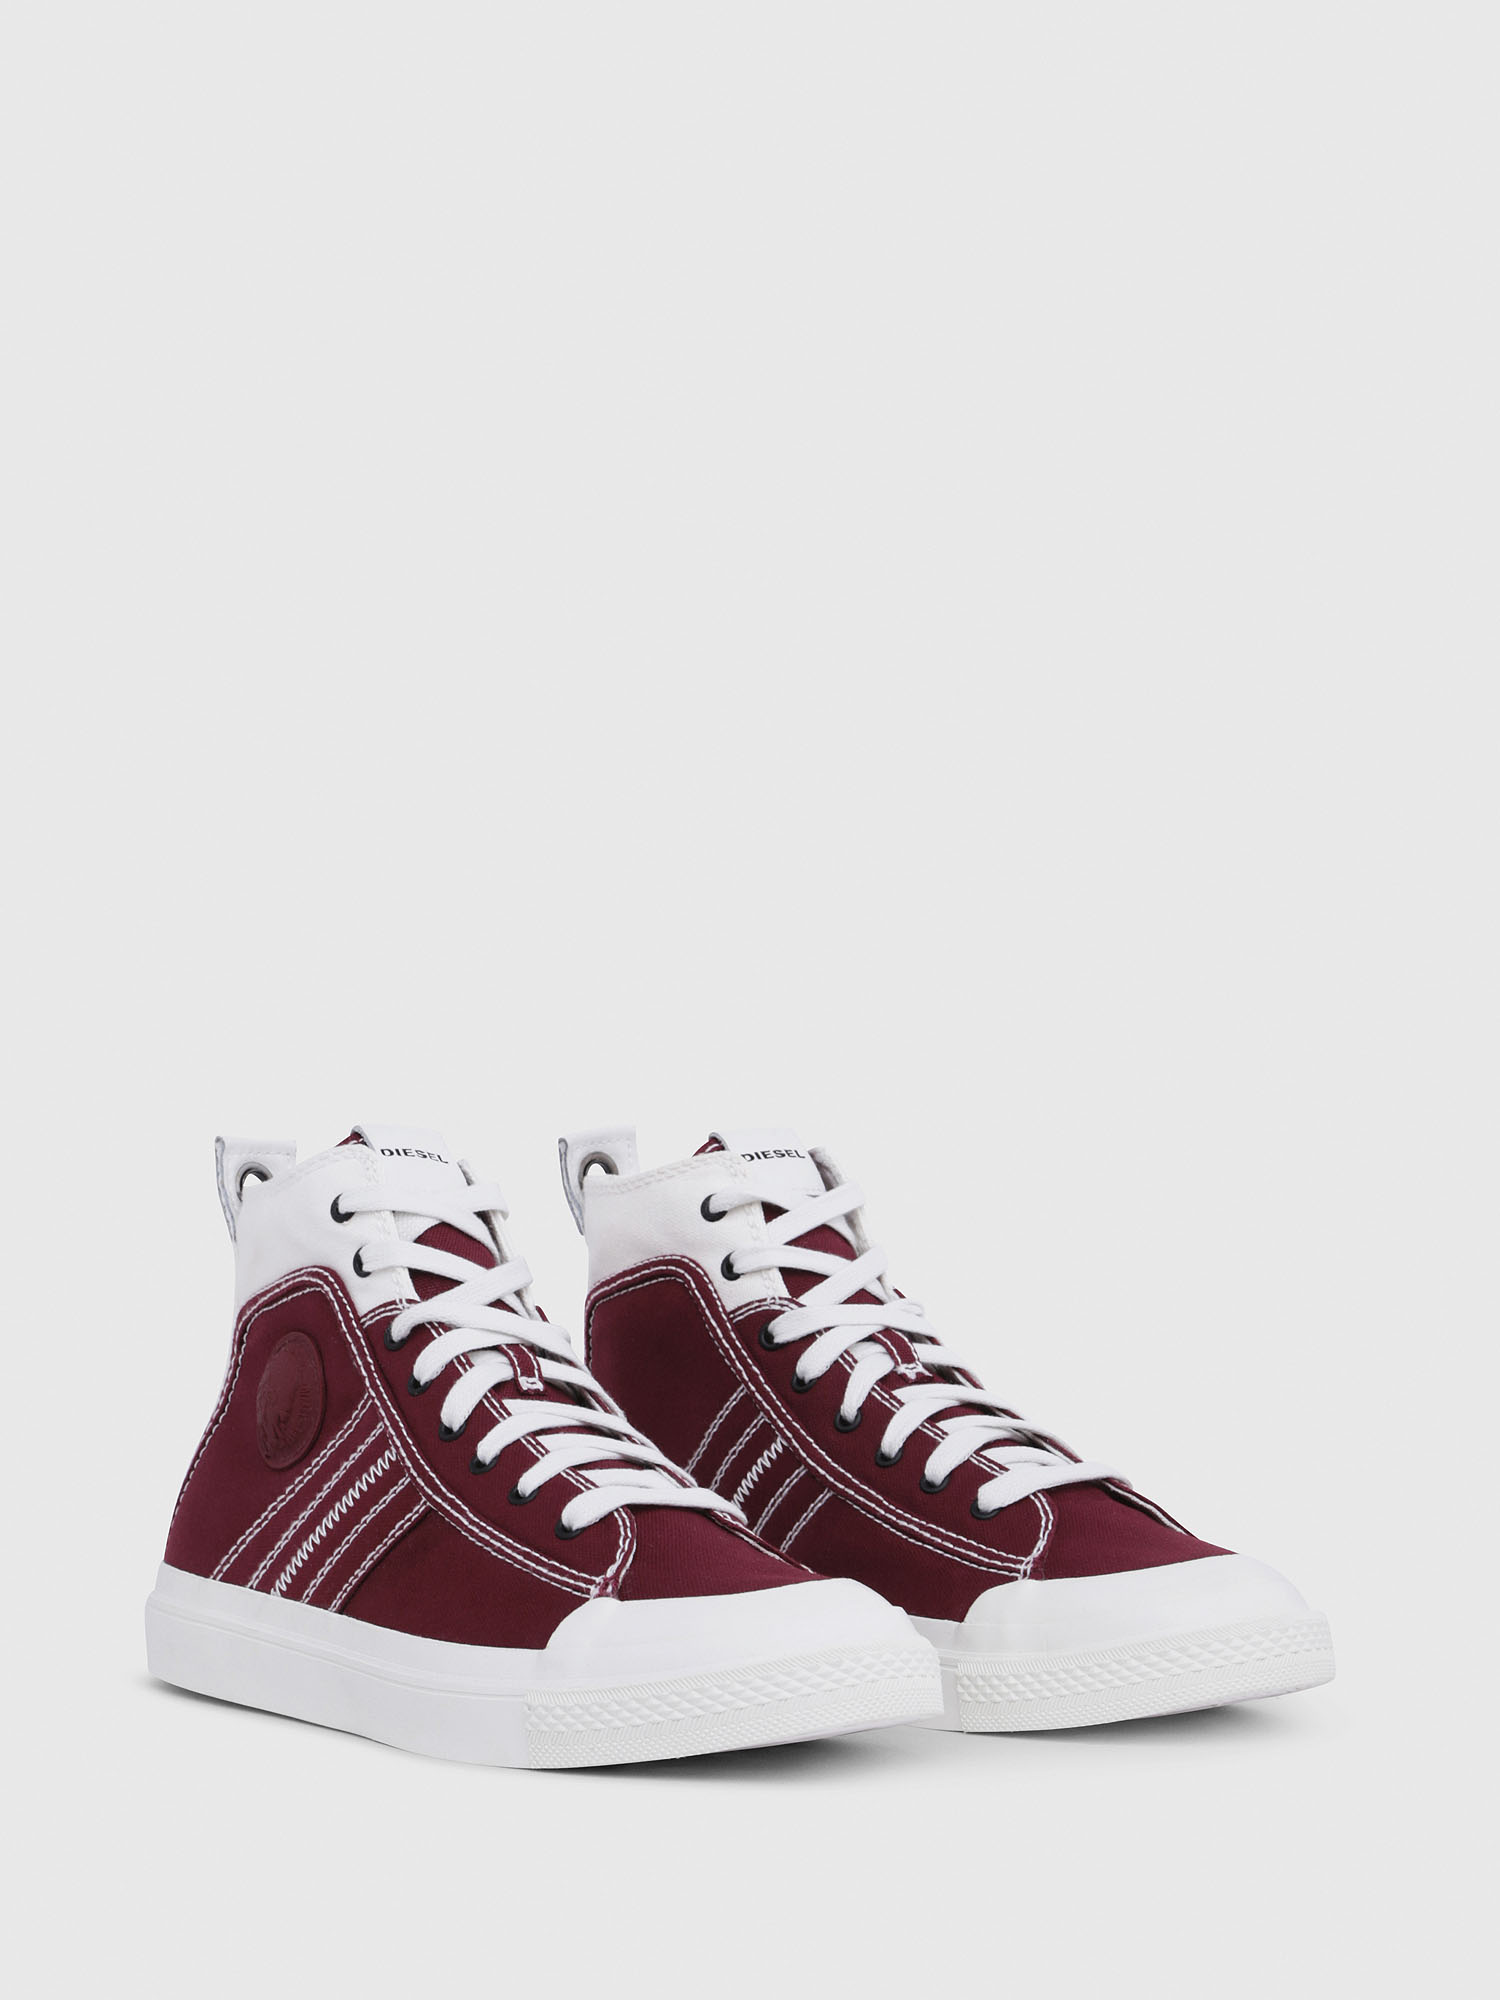 Diesel - S-ASTICO MID LACE,  - Sneakers - Image 2